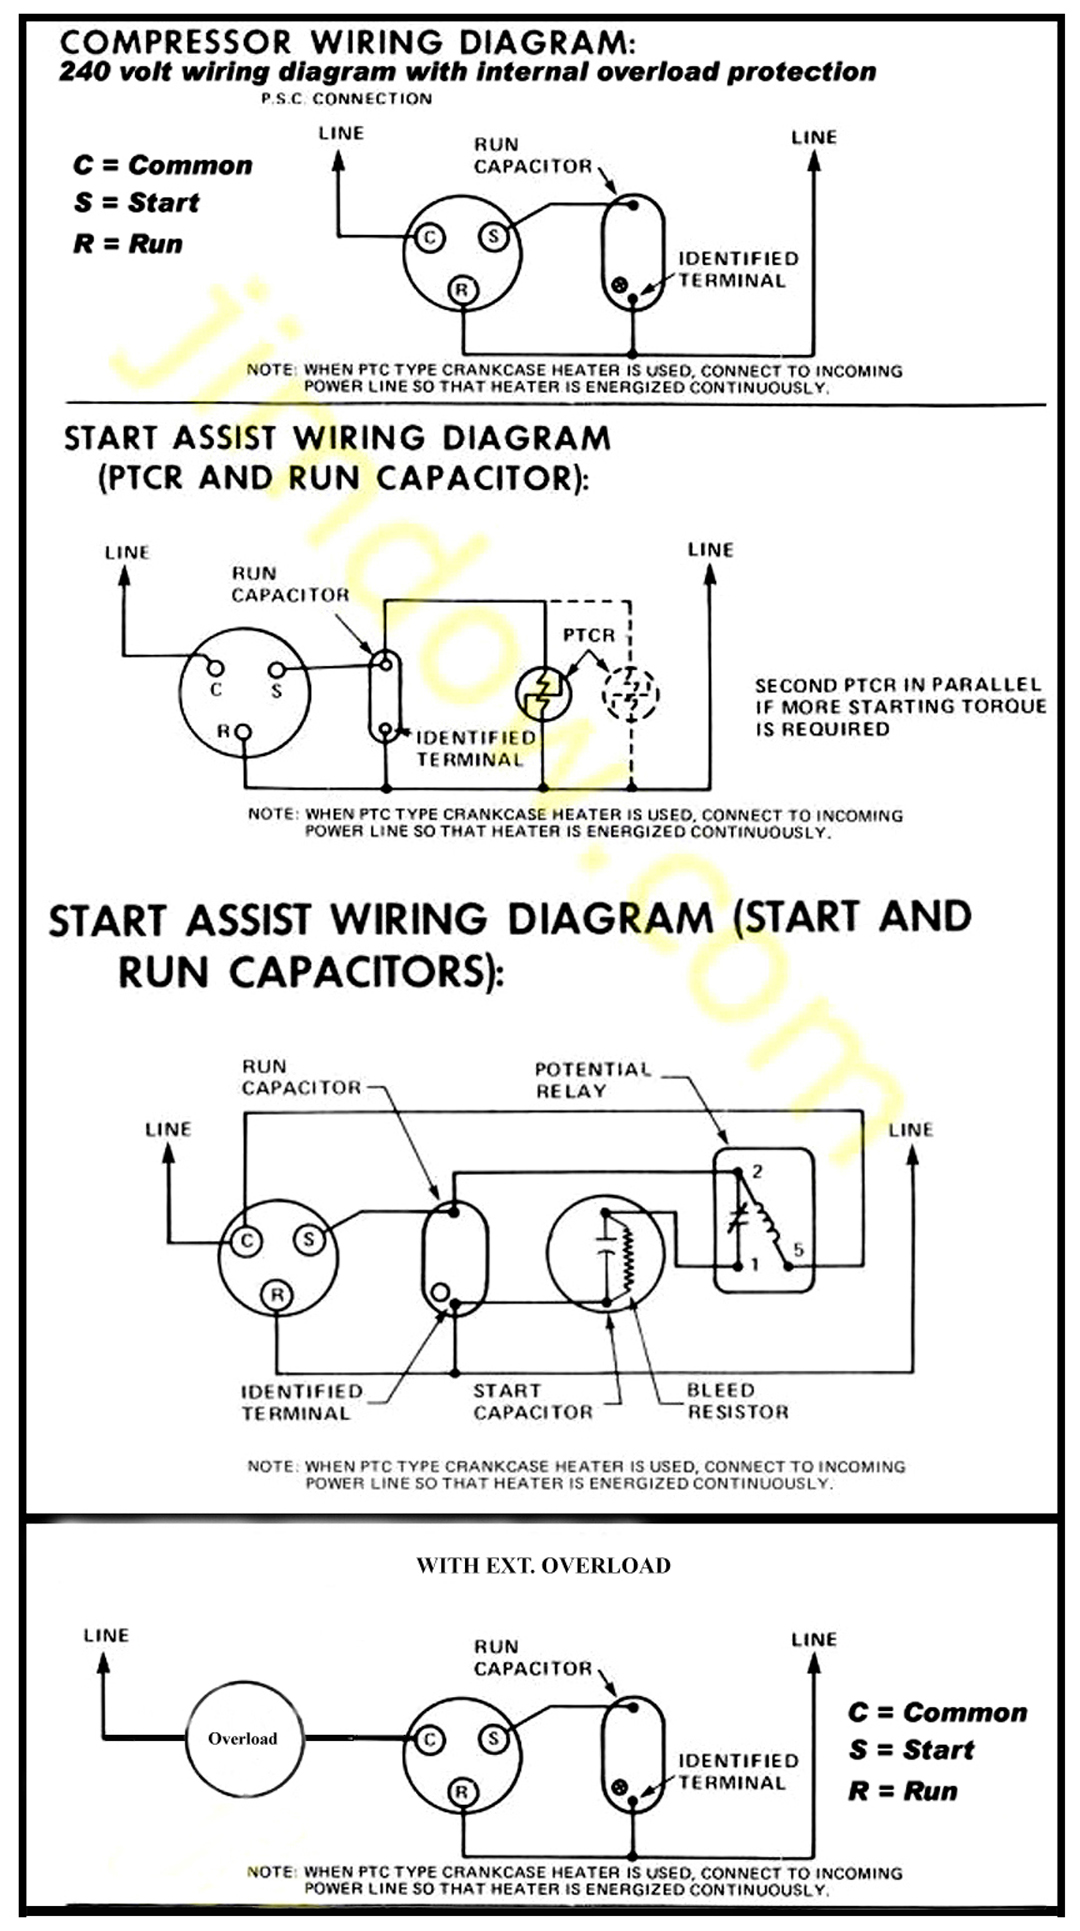 Ac compressor wire diagram wiring diagrams schematics air conditioner compressor wiring general spud cannon related rh spudfiles com at ac compressor wire diagram cheapraybanclubmaster